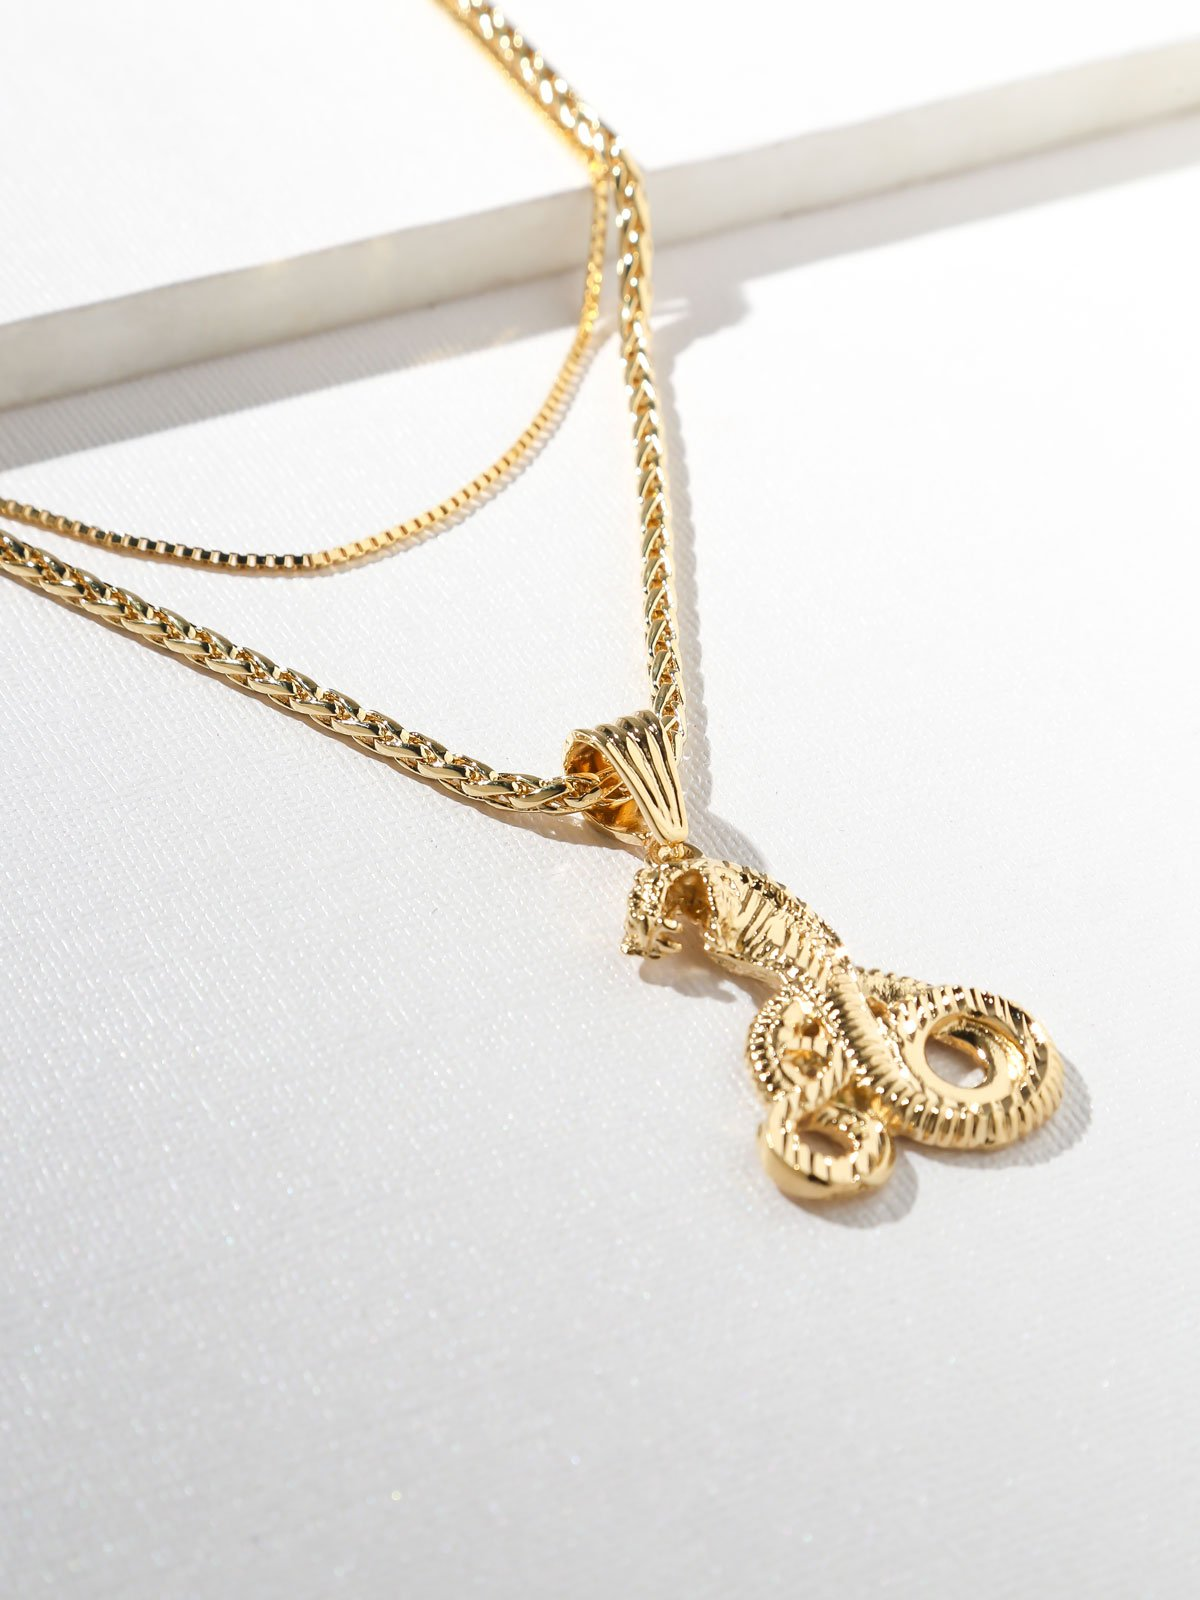 The Gold Cobra Necklace - Gold